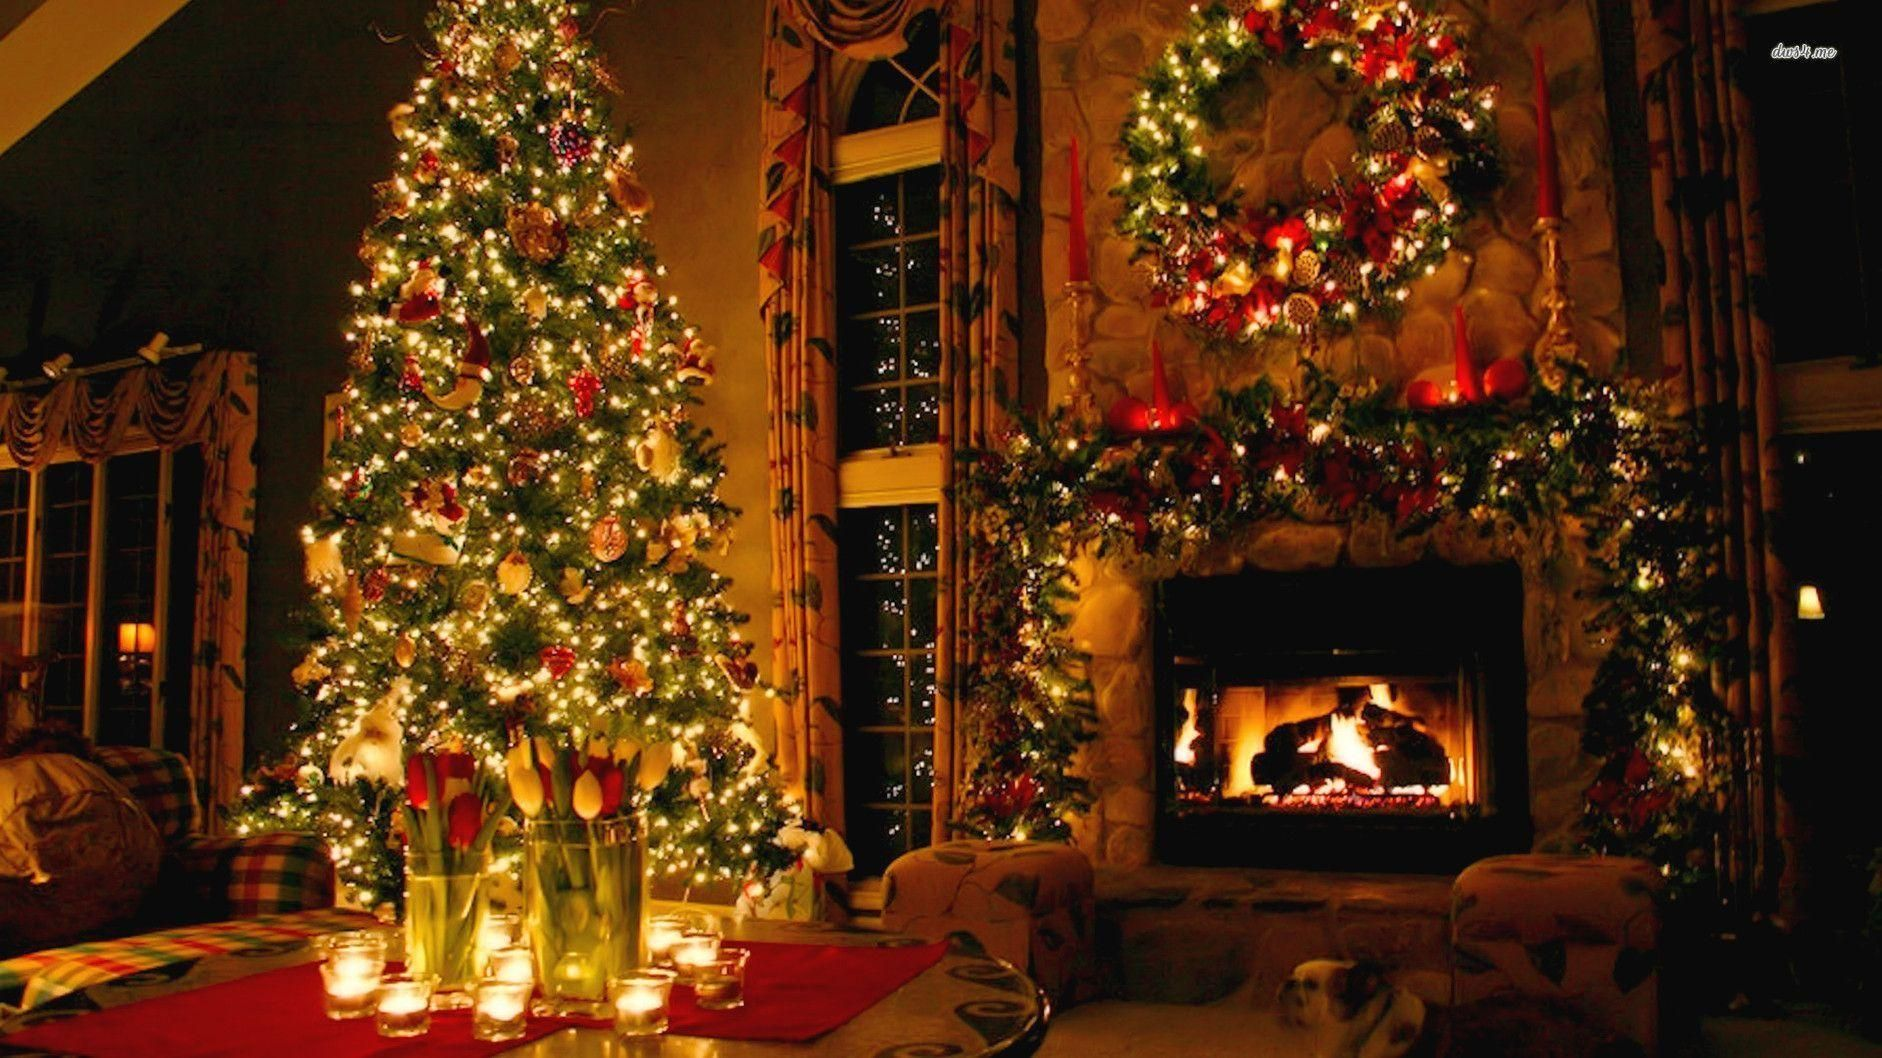 Fireplace Christmas Decor Wallpaper In Hd Hd Wallpapers Christmas Desktop Christmas Fireplace Beautiful Christmas Trees